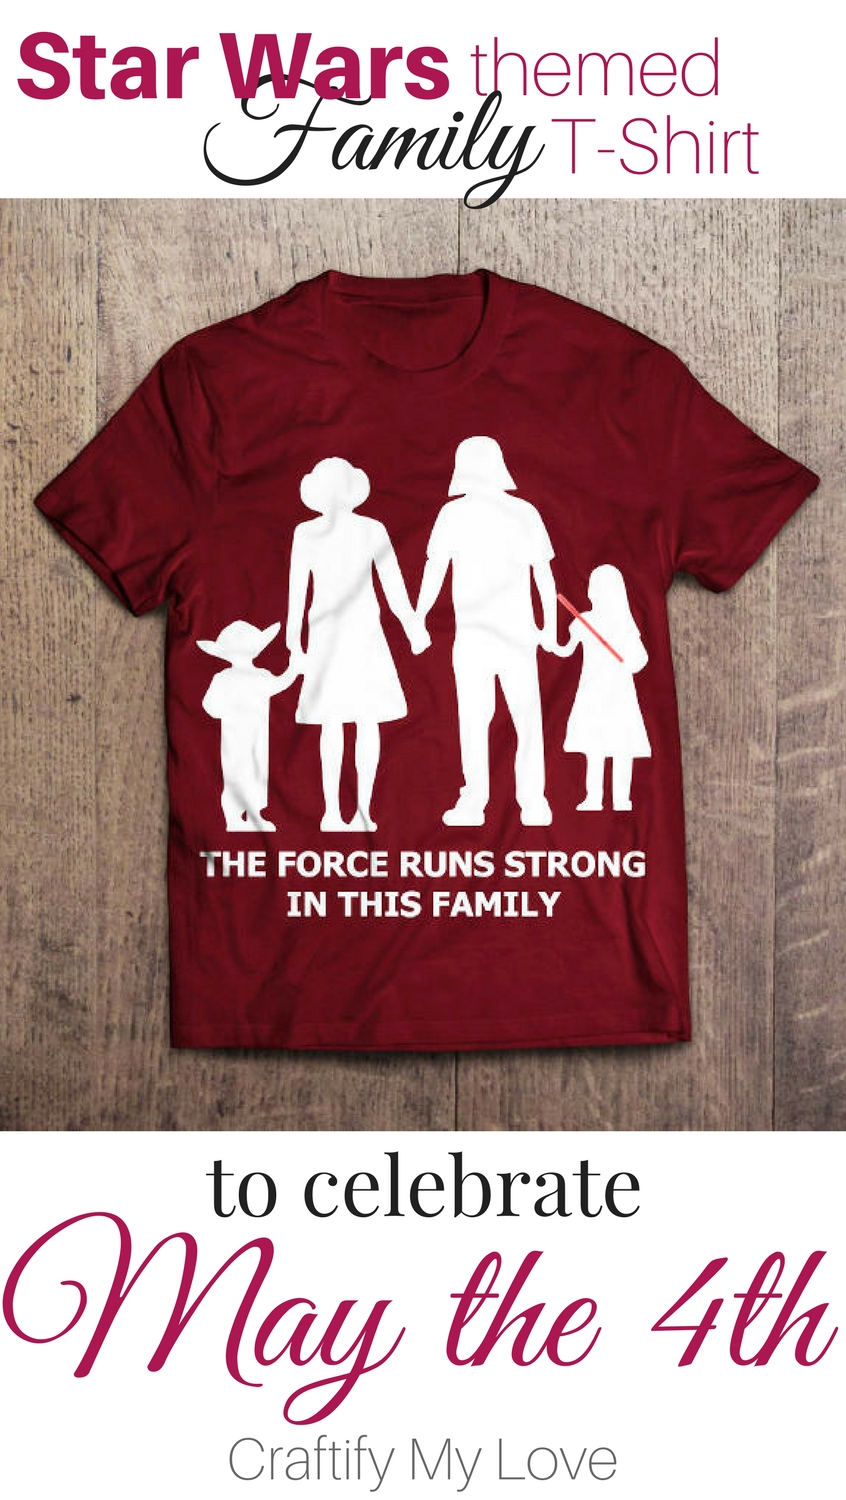 The-Force-runs-strong-in-this-family-star-wars-themed-t-shirt-for